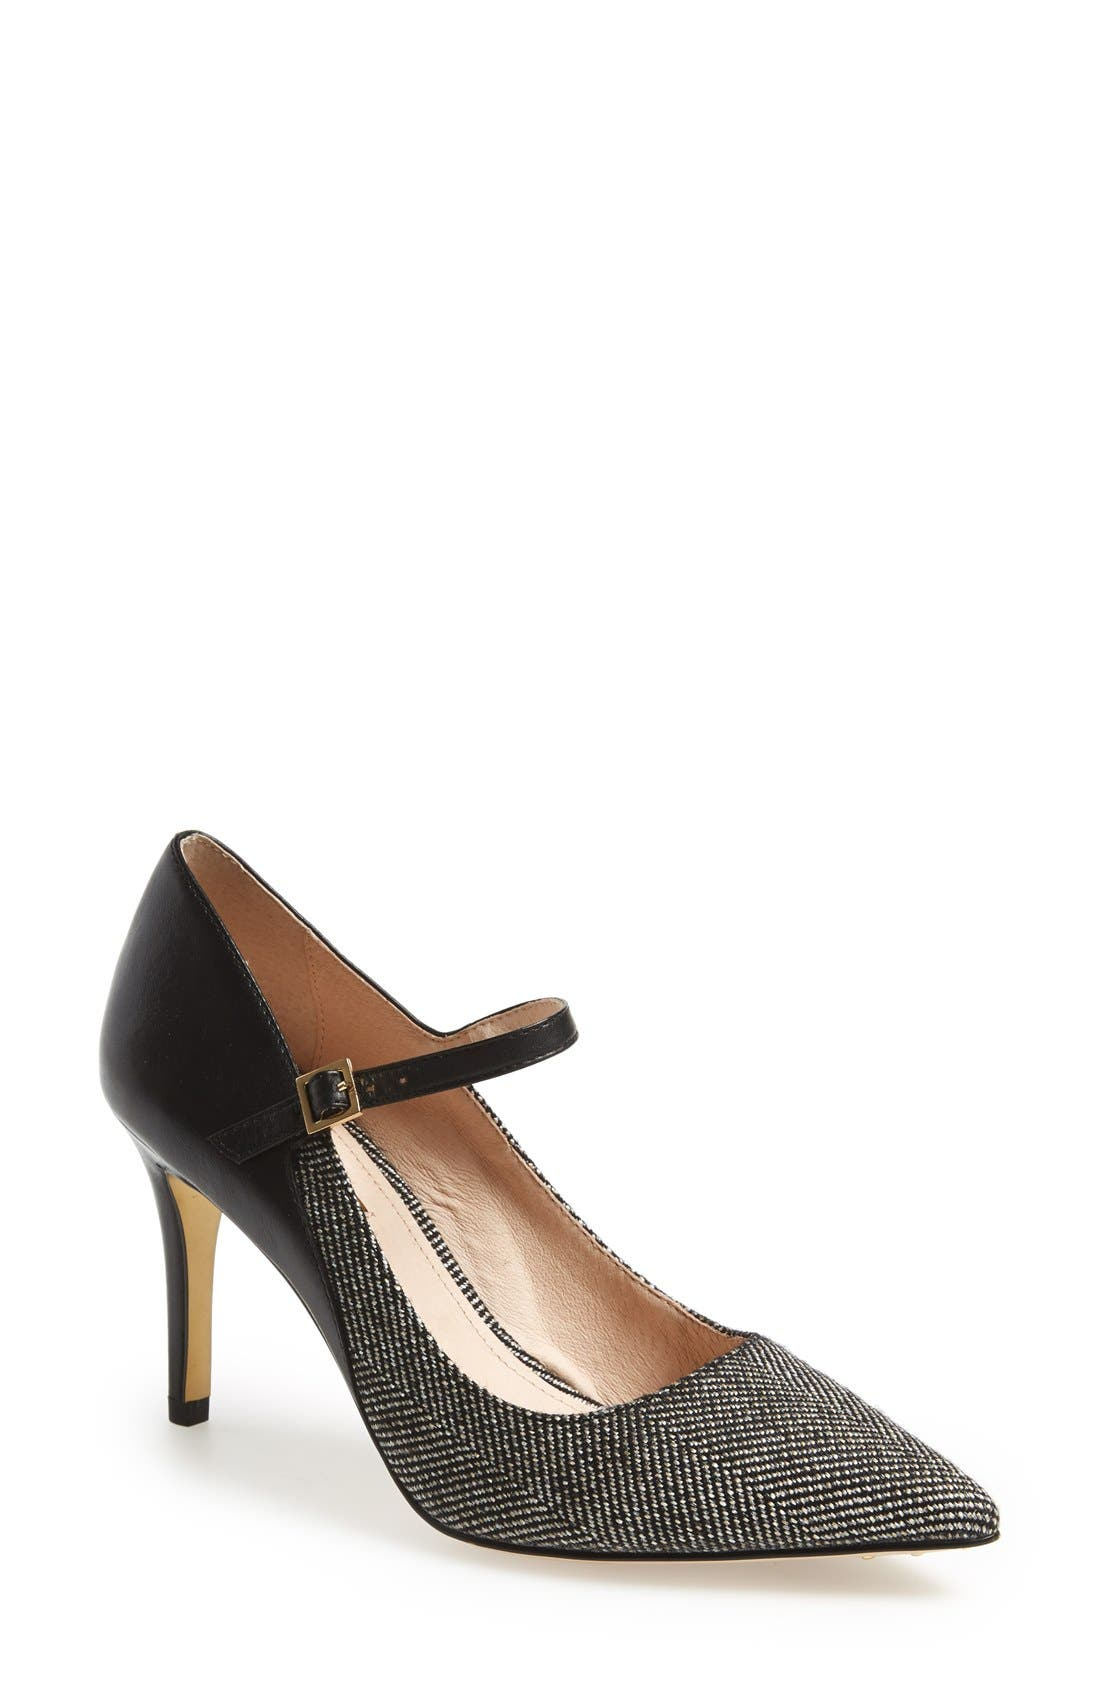 'Ione' Mary Jane Pump,                         Main,                         color, 020